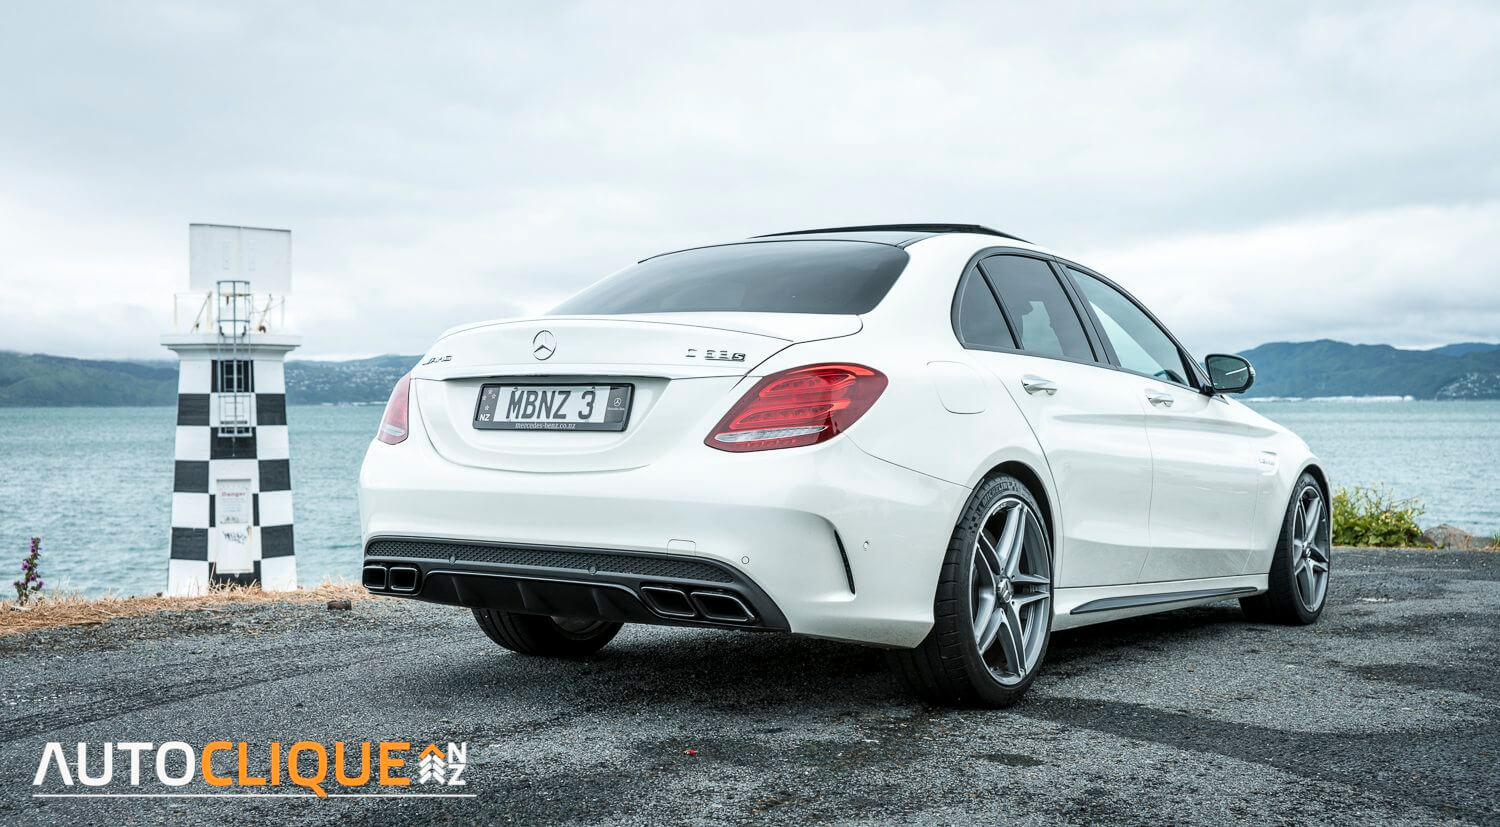 2016 mercedes benz c63 s amg road tested car review for Mercedes benz c63s